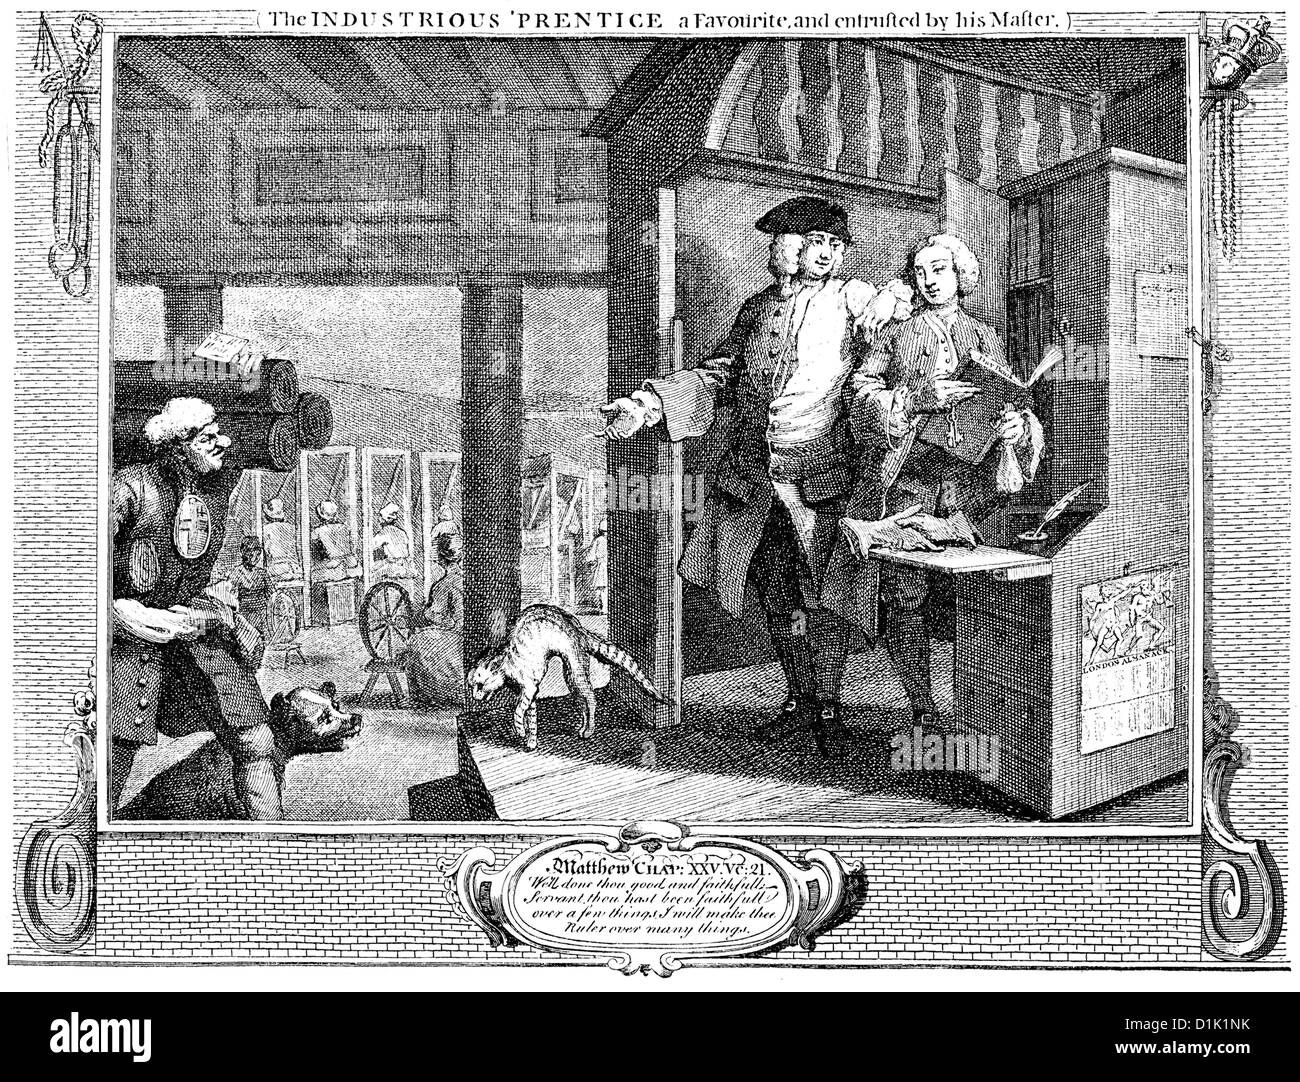 A cloth weaving mill in the middle of the 18th century in England, historic drawing by William Hogarth, 1697 - 1764 - Stock Image